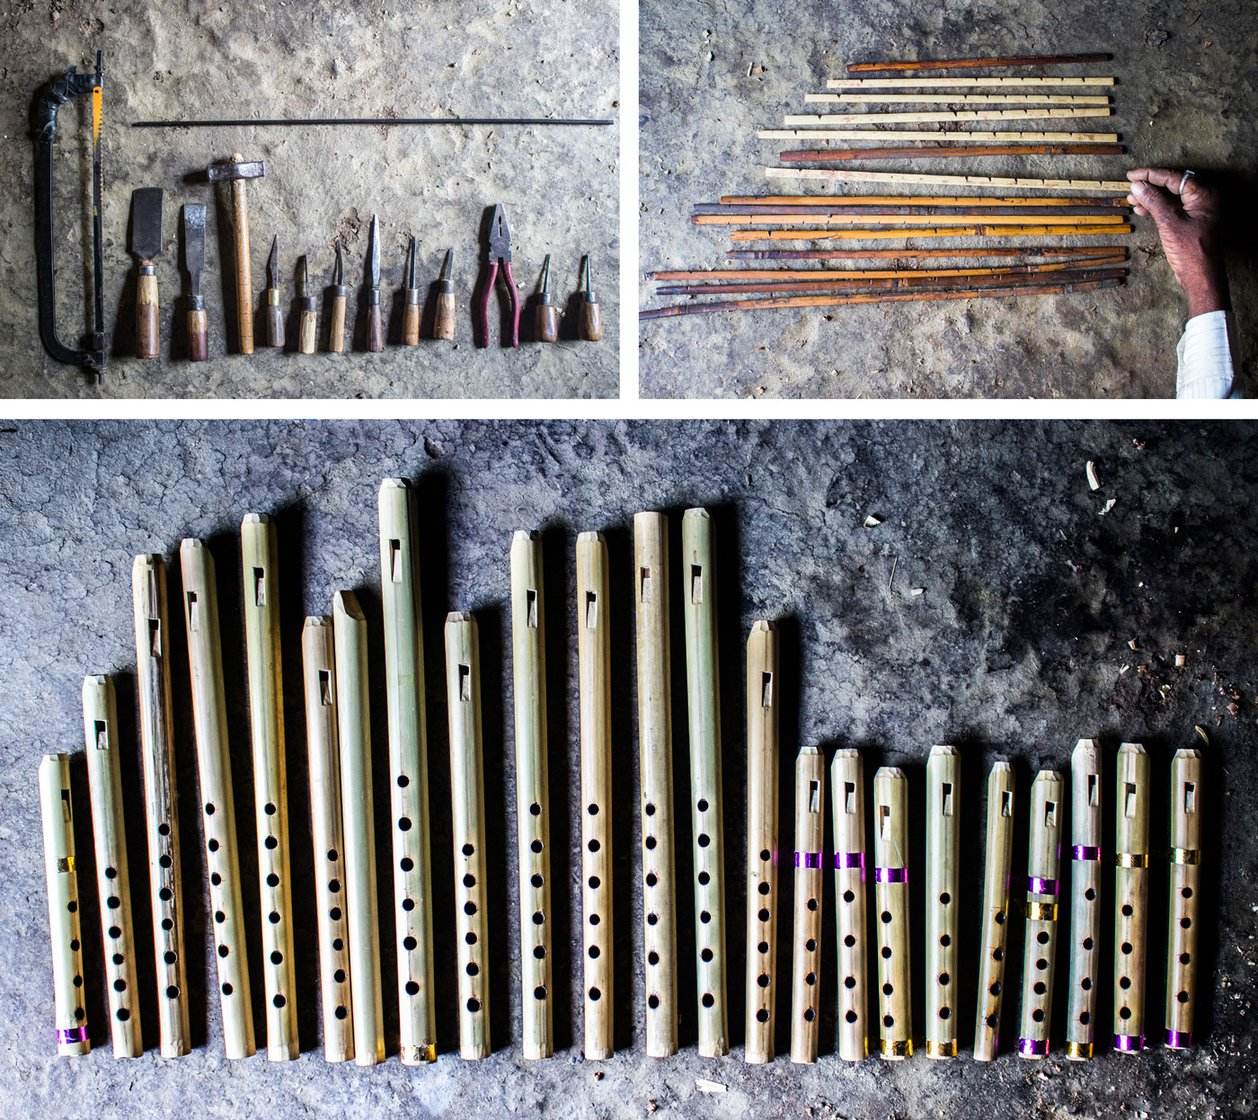 Top left: The flute-makers toolkit with (left-to-right) a hacksaw blade, two types of patli, hatodi, three types of chaku (knives) a cleaning chaku, two varieties of masudichi aari, pakad, two aari for making holes, and the metal rod on top is the gaz. Top right: The tone holes on a flute are made using these sticks which have marks for measurements. Bottom: Dinkar Aiwale has spent over 1.5 lakh hours perfecting his craft and now takes less than an hour to make a flute